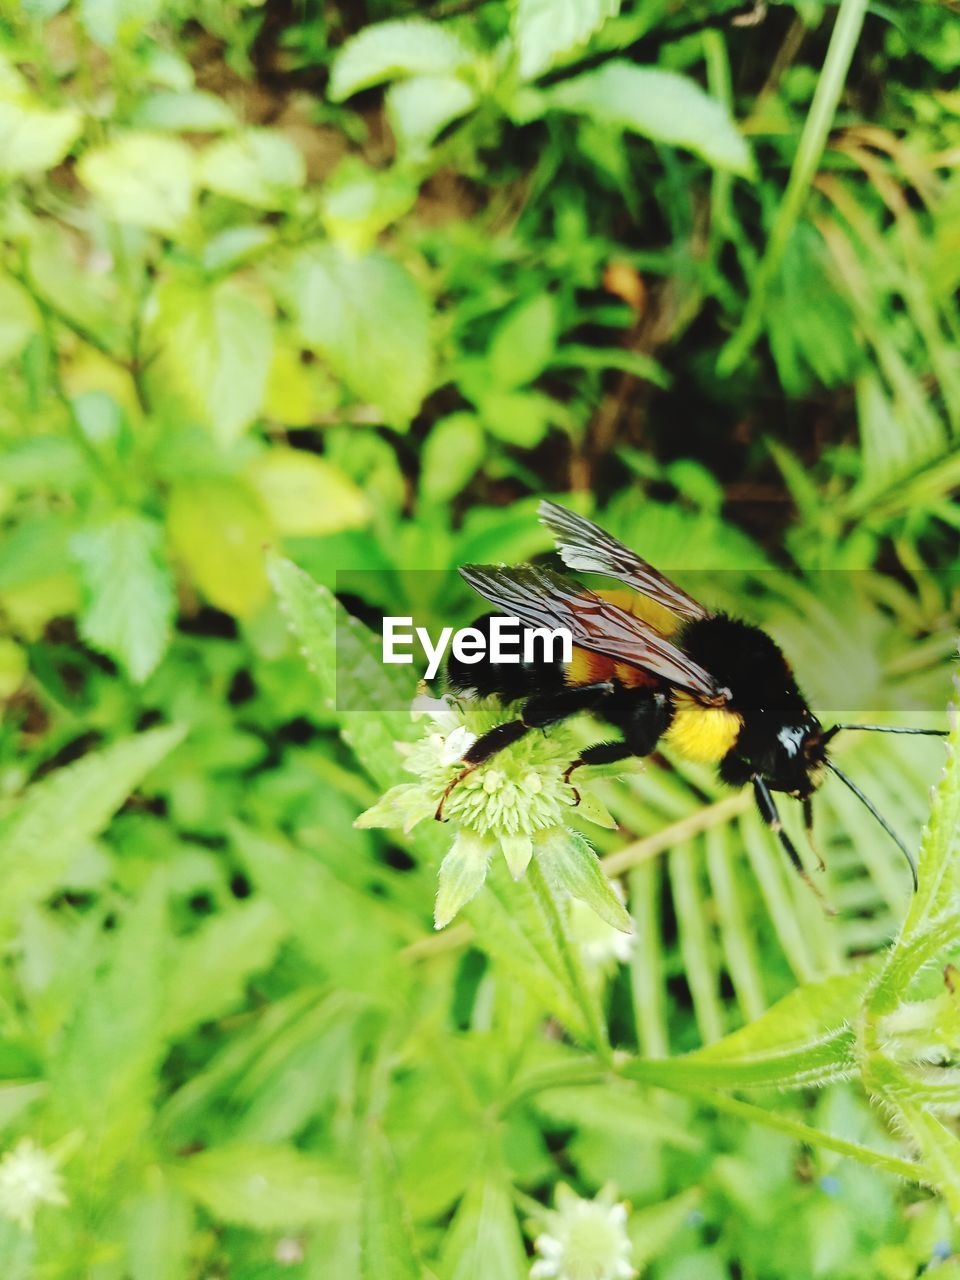 animals in the wild, insect, animal wildlife, animal themes, one animal, animal, invertebrate, plant, green color, beauty in nature, plant part, leaf, close-up, growth, day, nature, focus on foreground, no people, animal wing, selective focus, outdoors, pollination